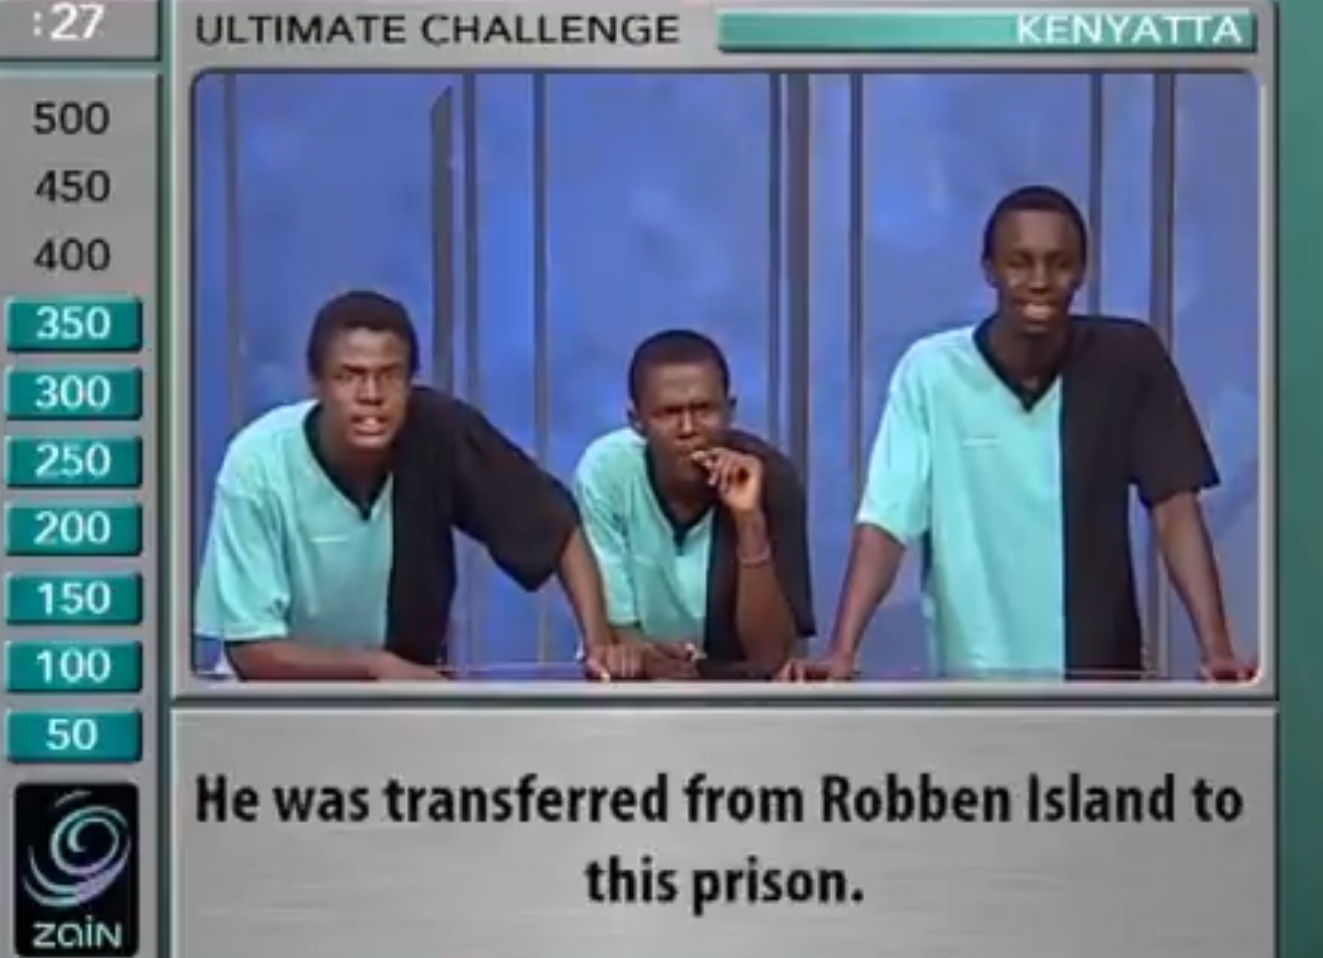 Mandela was transferred to which prison after Robben Island?